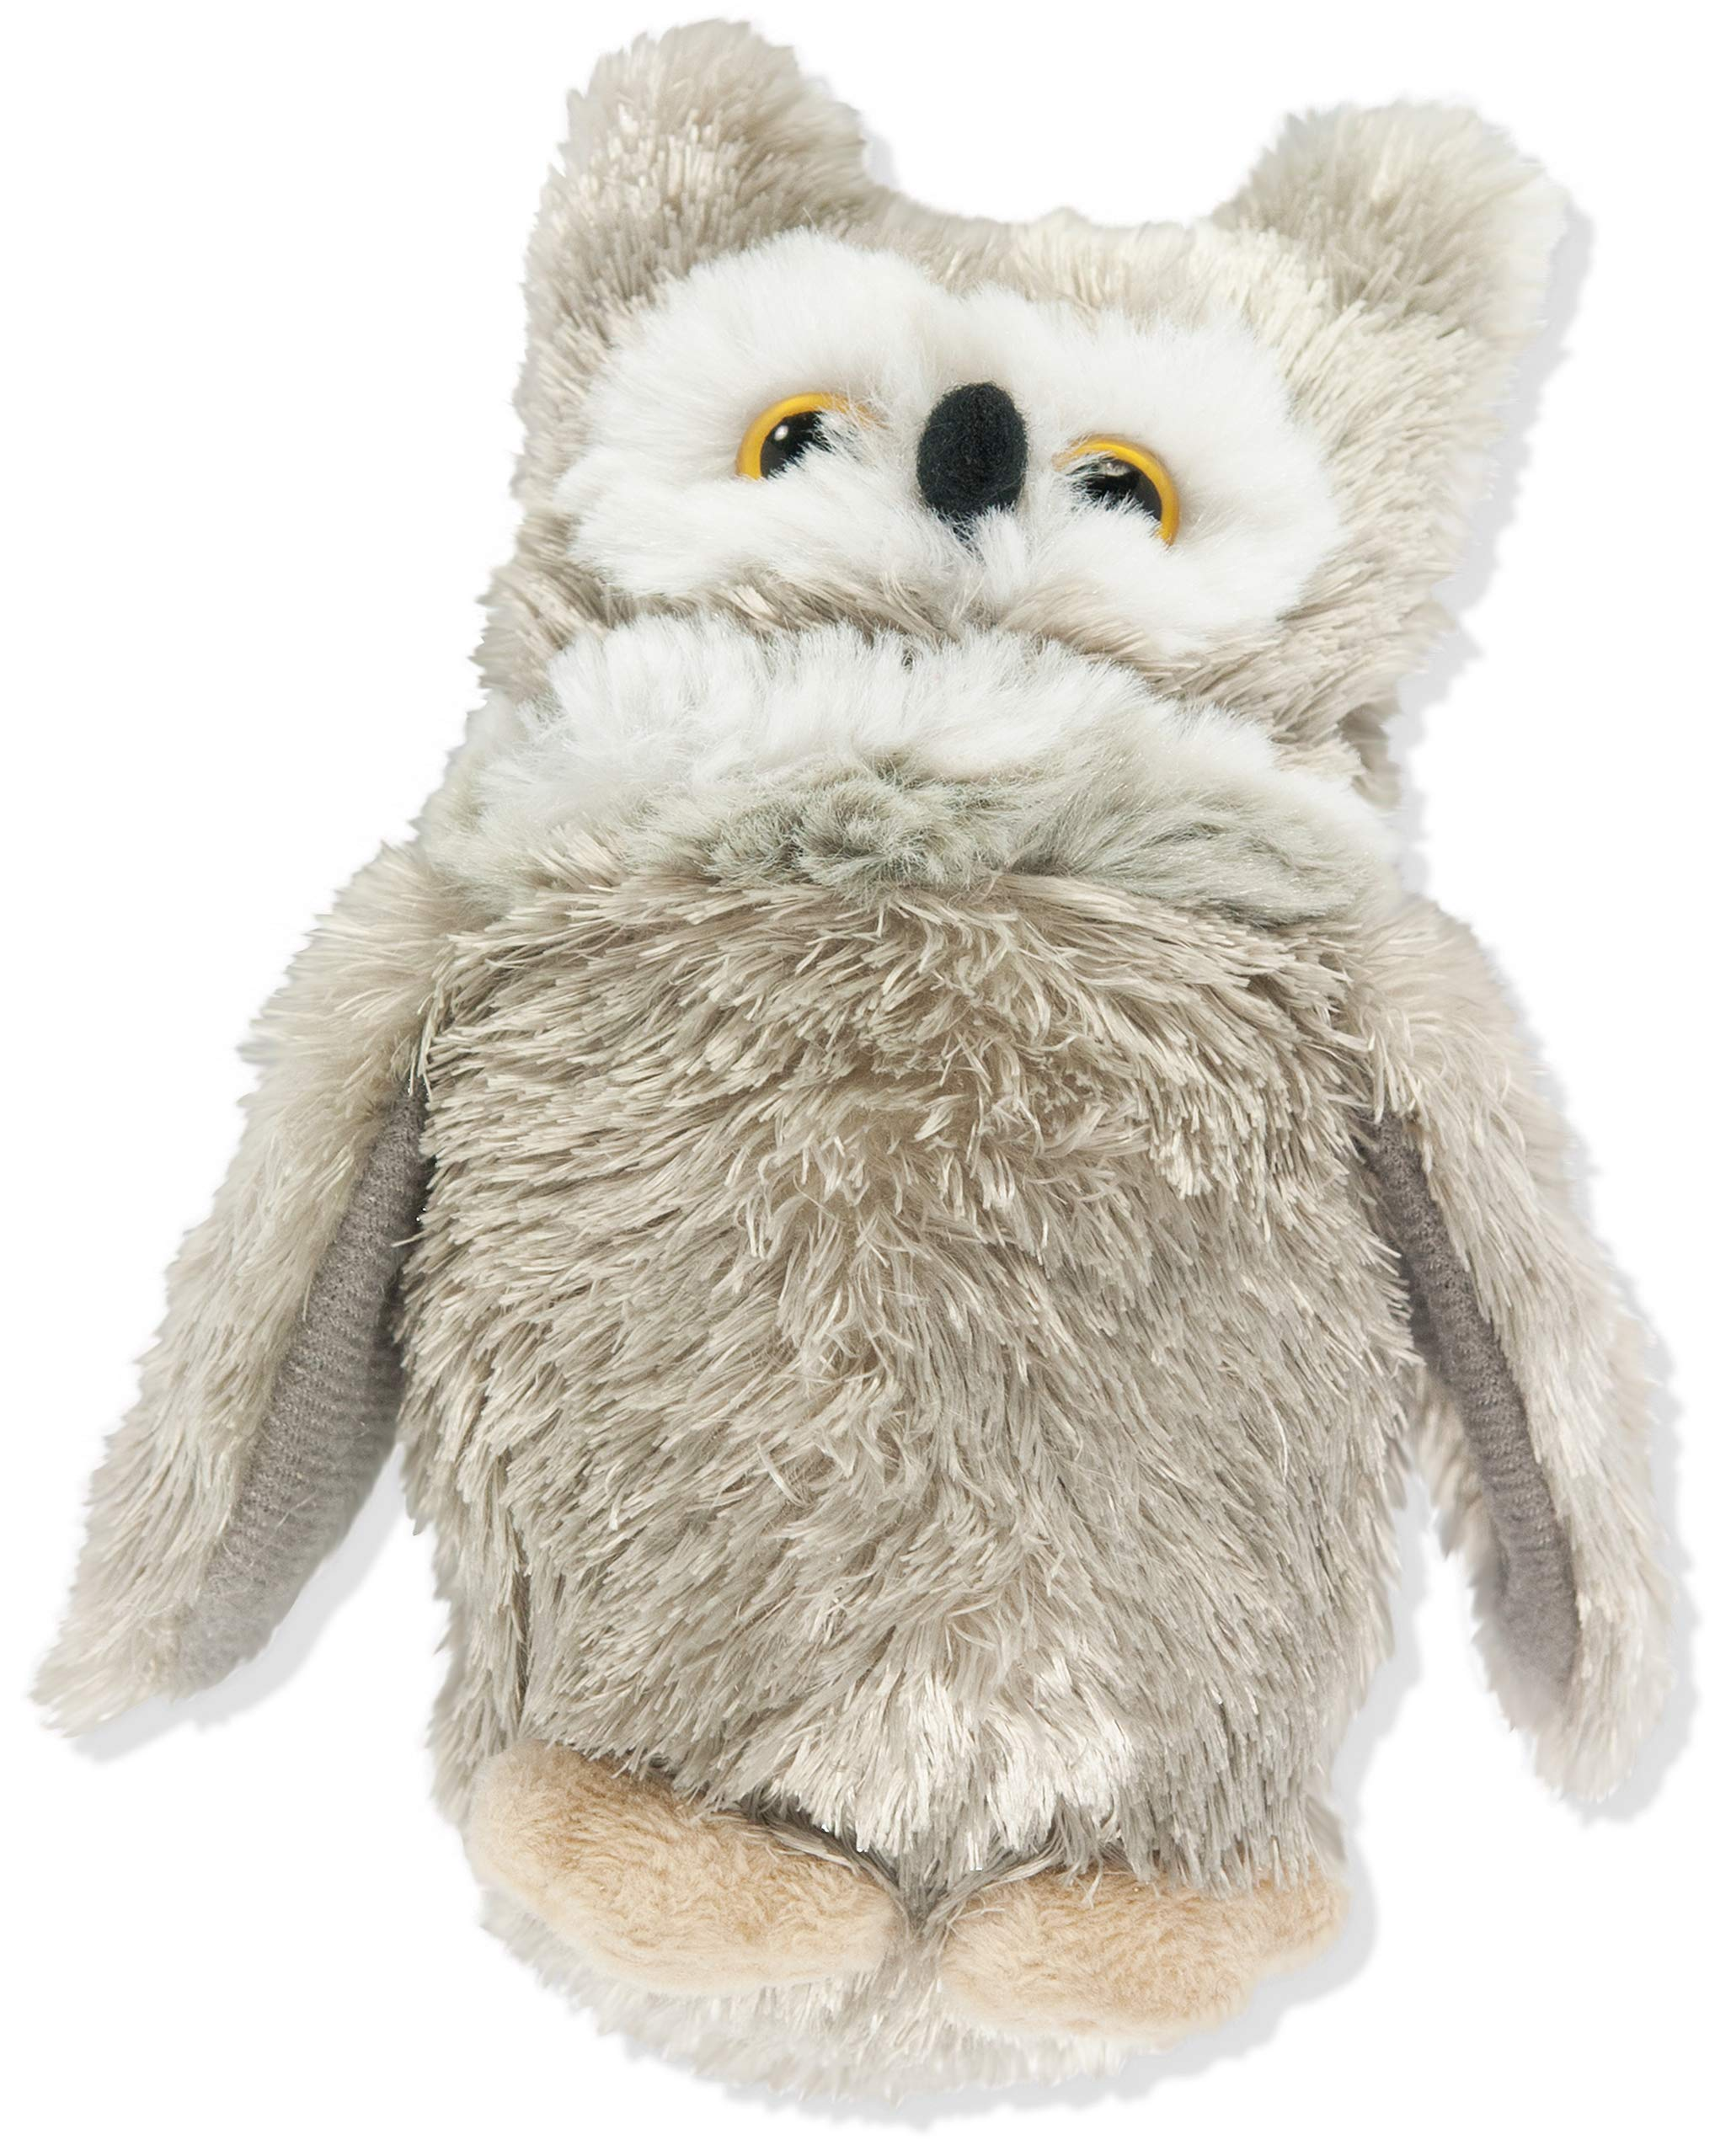 Watch How to Care for a Stuffed Owl video